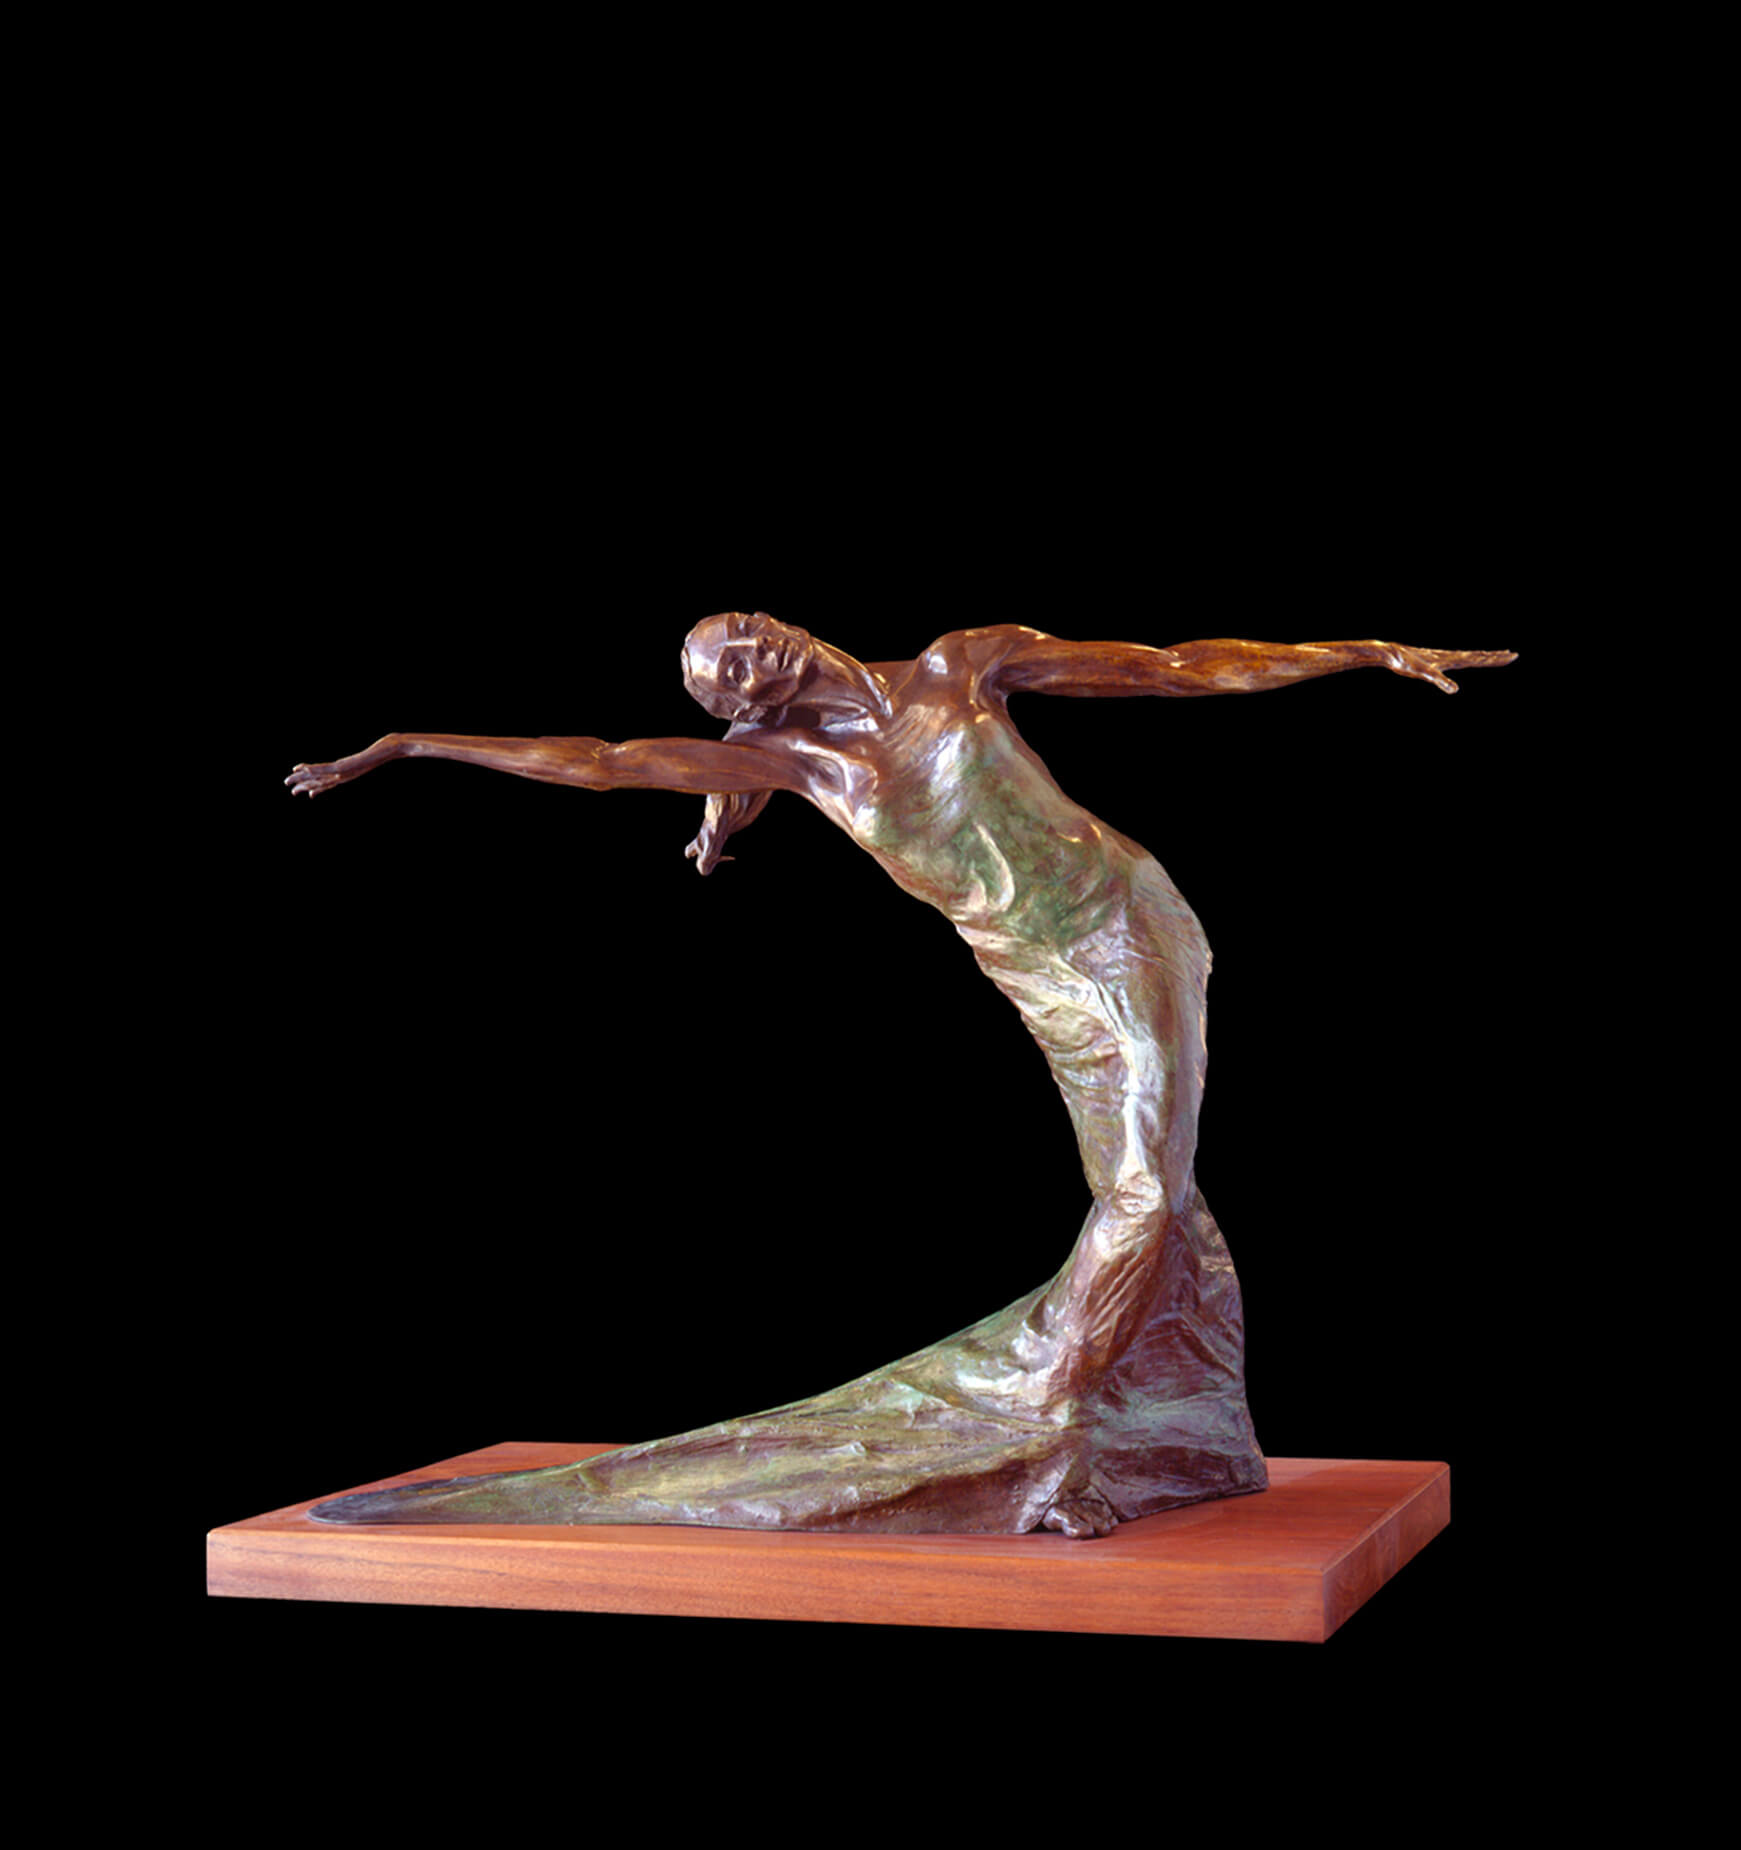 Terpsichore a large fremale bronze dancer by sculptor Andrew DeVries